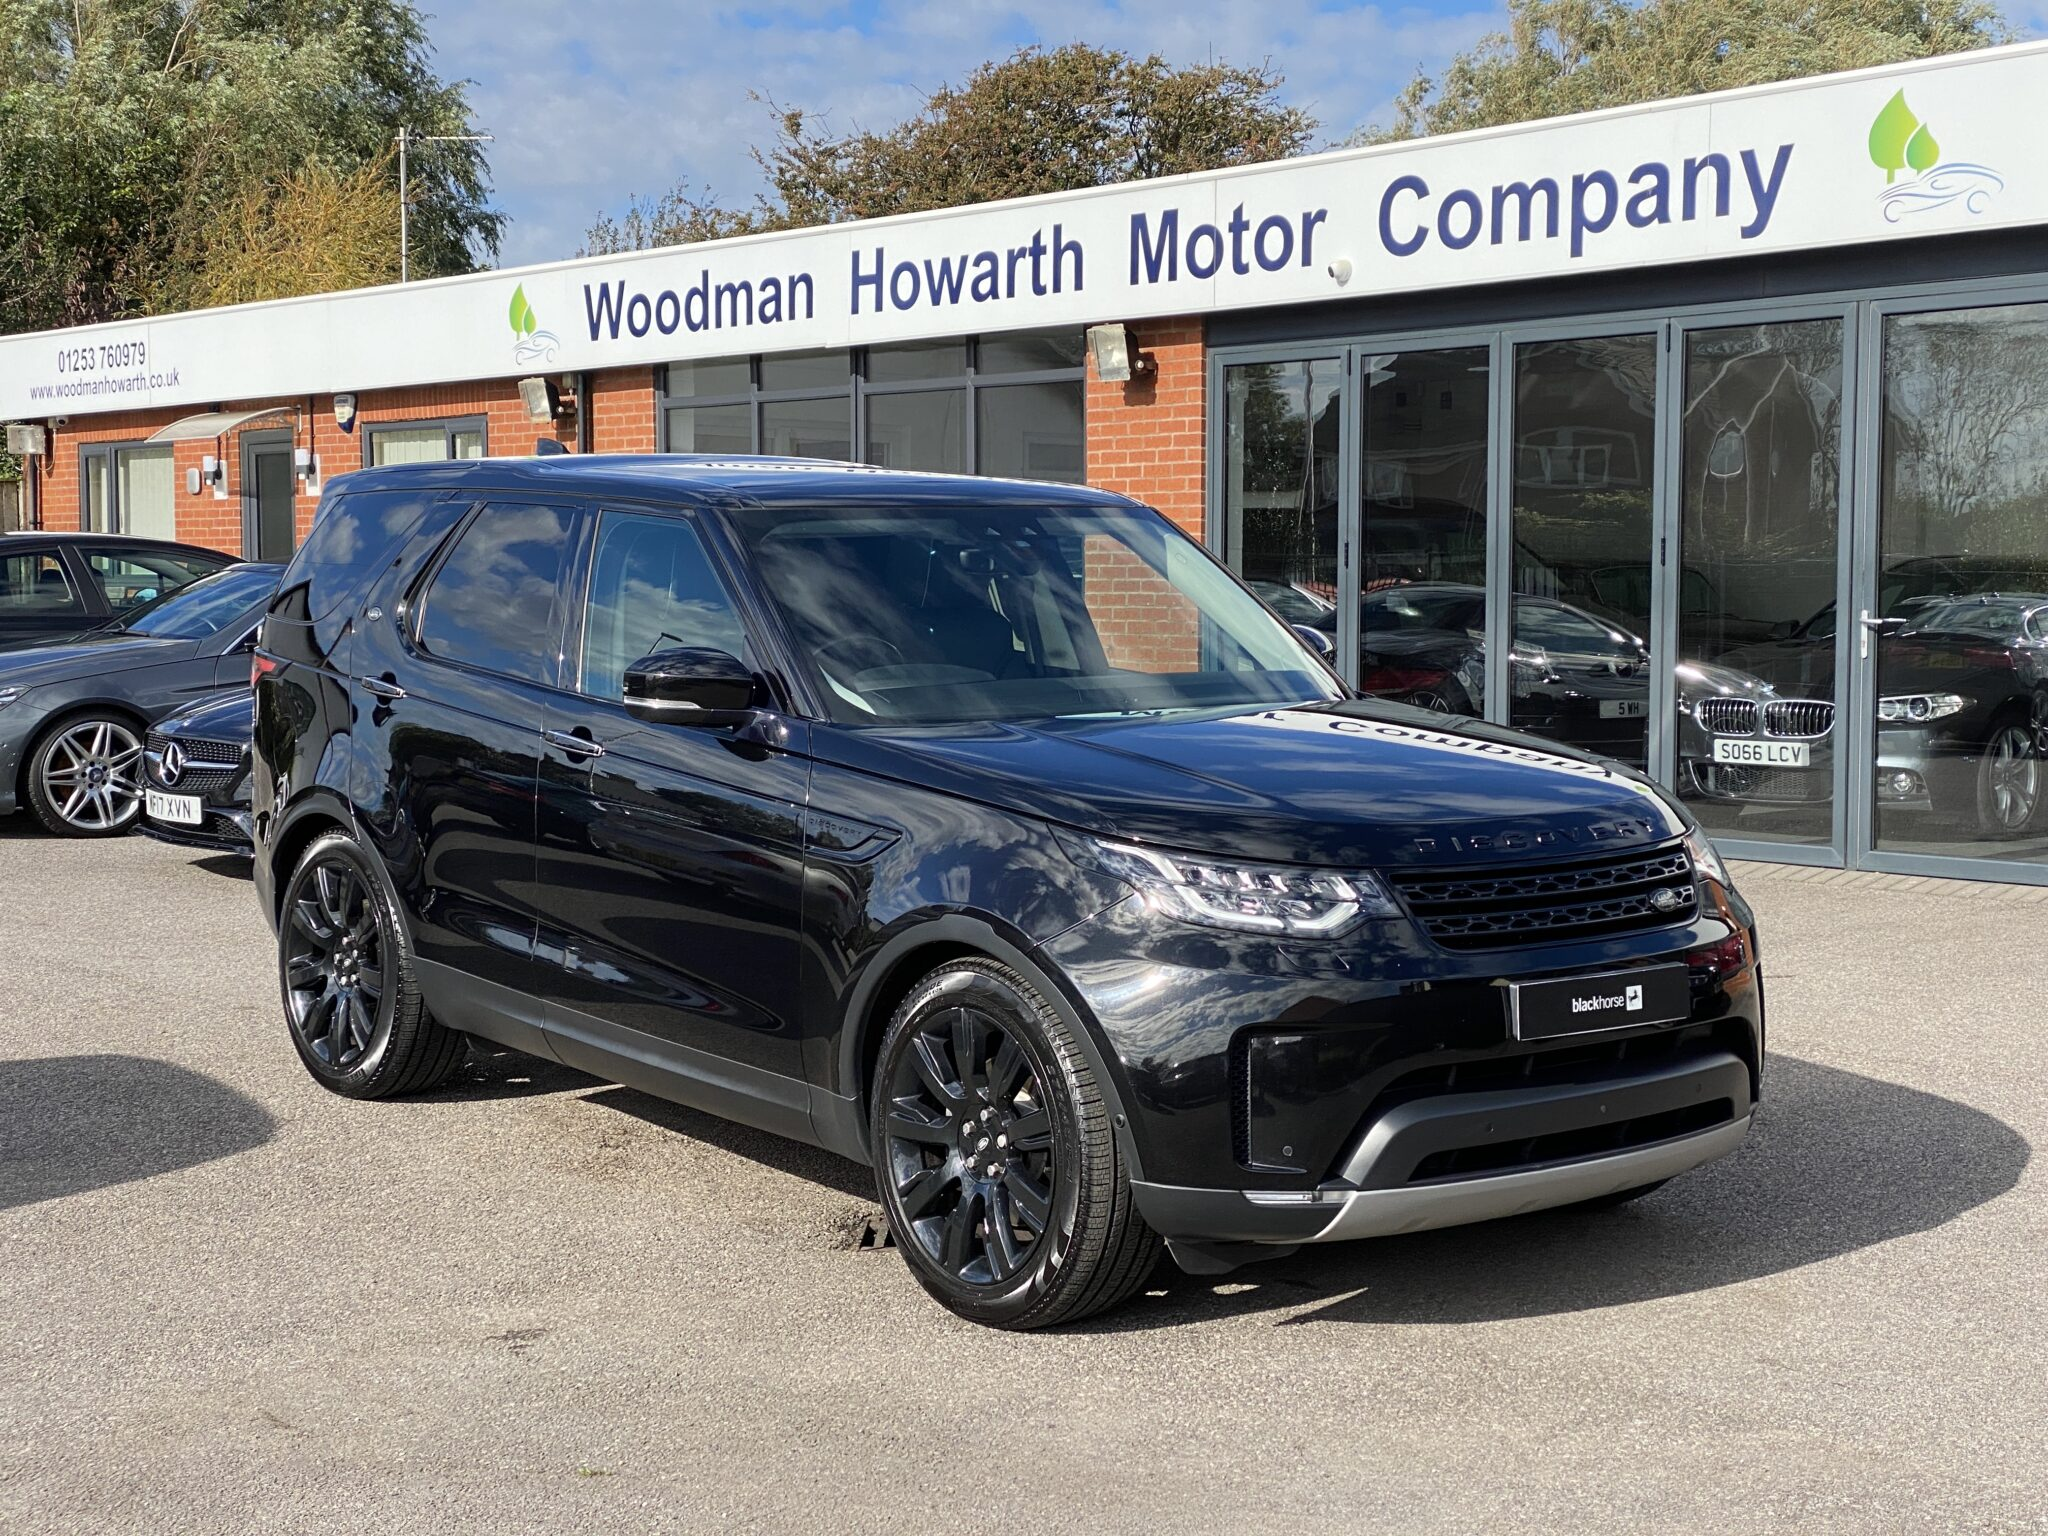 2017 17 LANDROVER DISCOVERY 3.0 TDV6 HSE LUXURY 7 SEAT AUTO 1 Prev Owner FSH Huge Spec